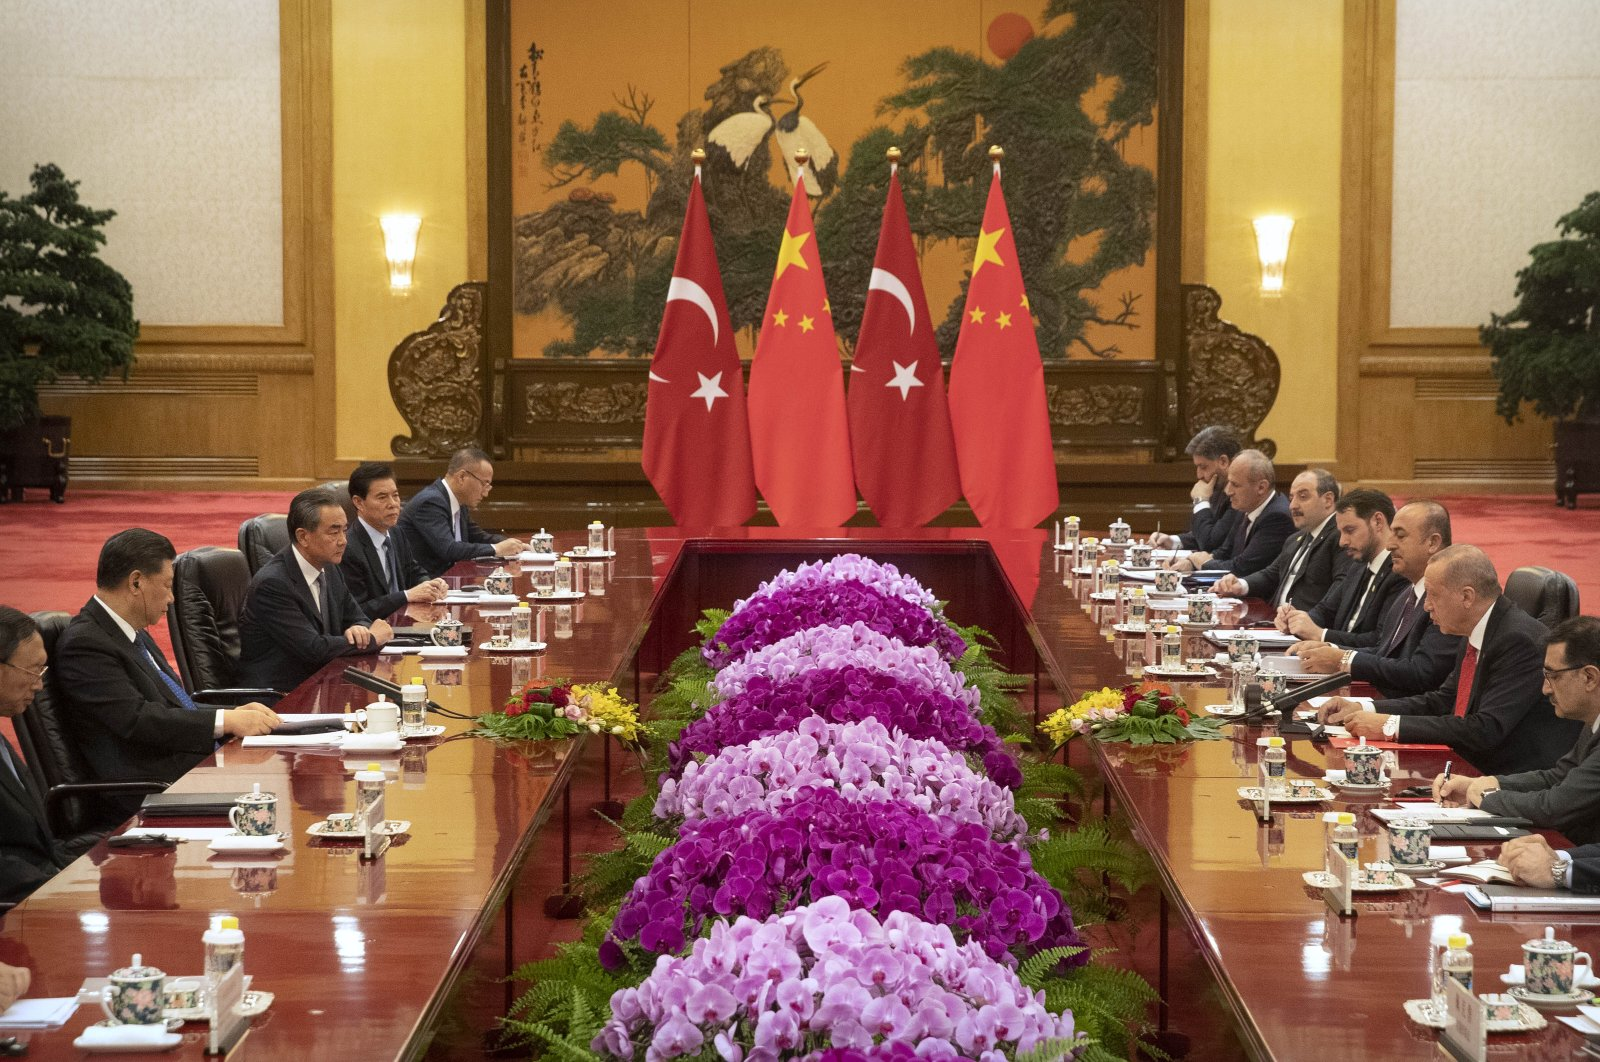 President Recep Tayyip Erdoğan (C-R) speaks during a meeting with Chinese President Xi Jinping (C-L) at the Great Hall of the People in Beijing, China, July 2, 2019. (Getty Images)